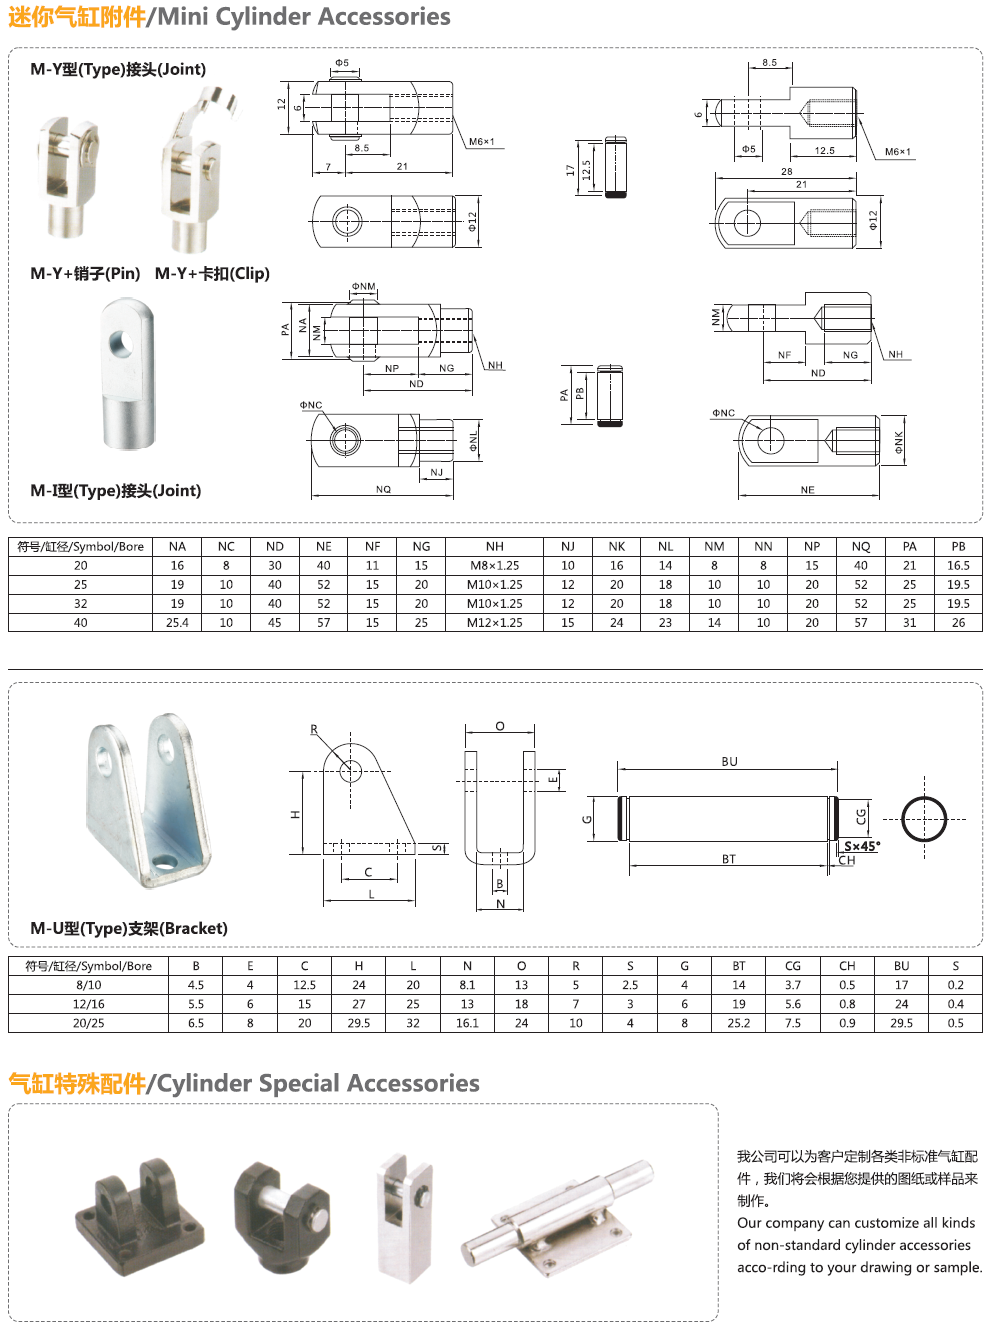 Cylinder accessories floating connector / universal joint